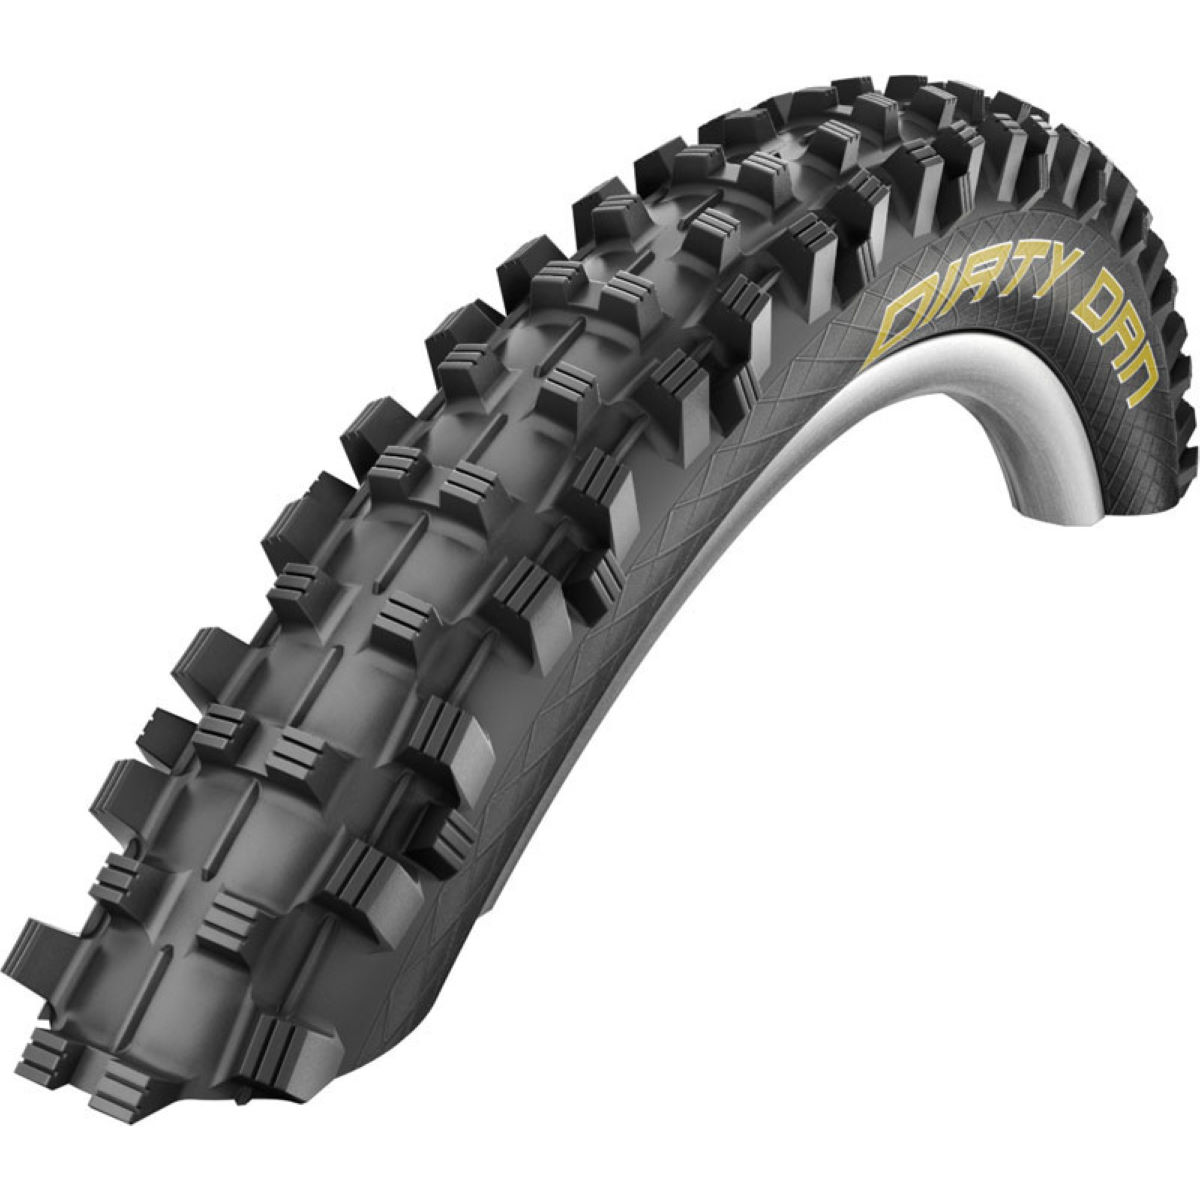 Cubierta plegable 650B Schwalbe Dirty Dan Super Gravity TL Easy  - Cubiertas para freeride y DH